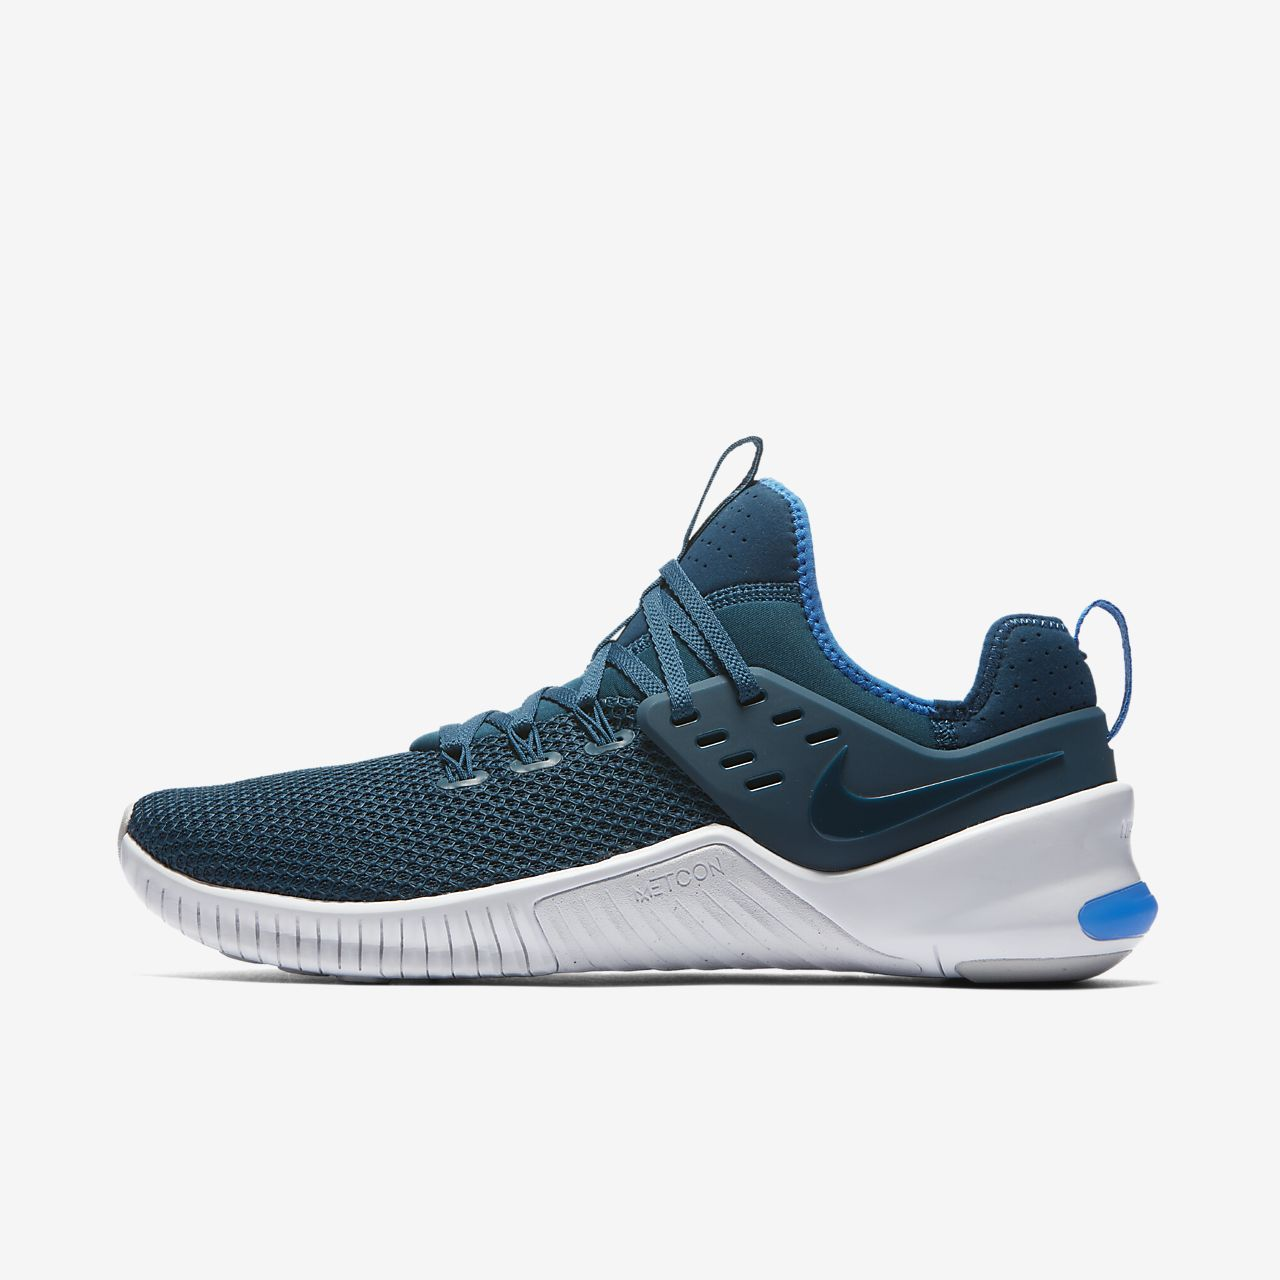 b8b82b752b64 Nike Free x Metcon Gym Cross Training Shoe. This color THO... womensnike   sneakersforwomen  aff